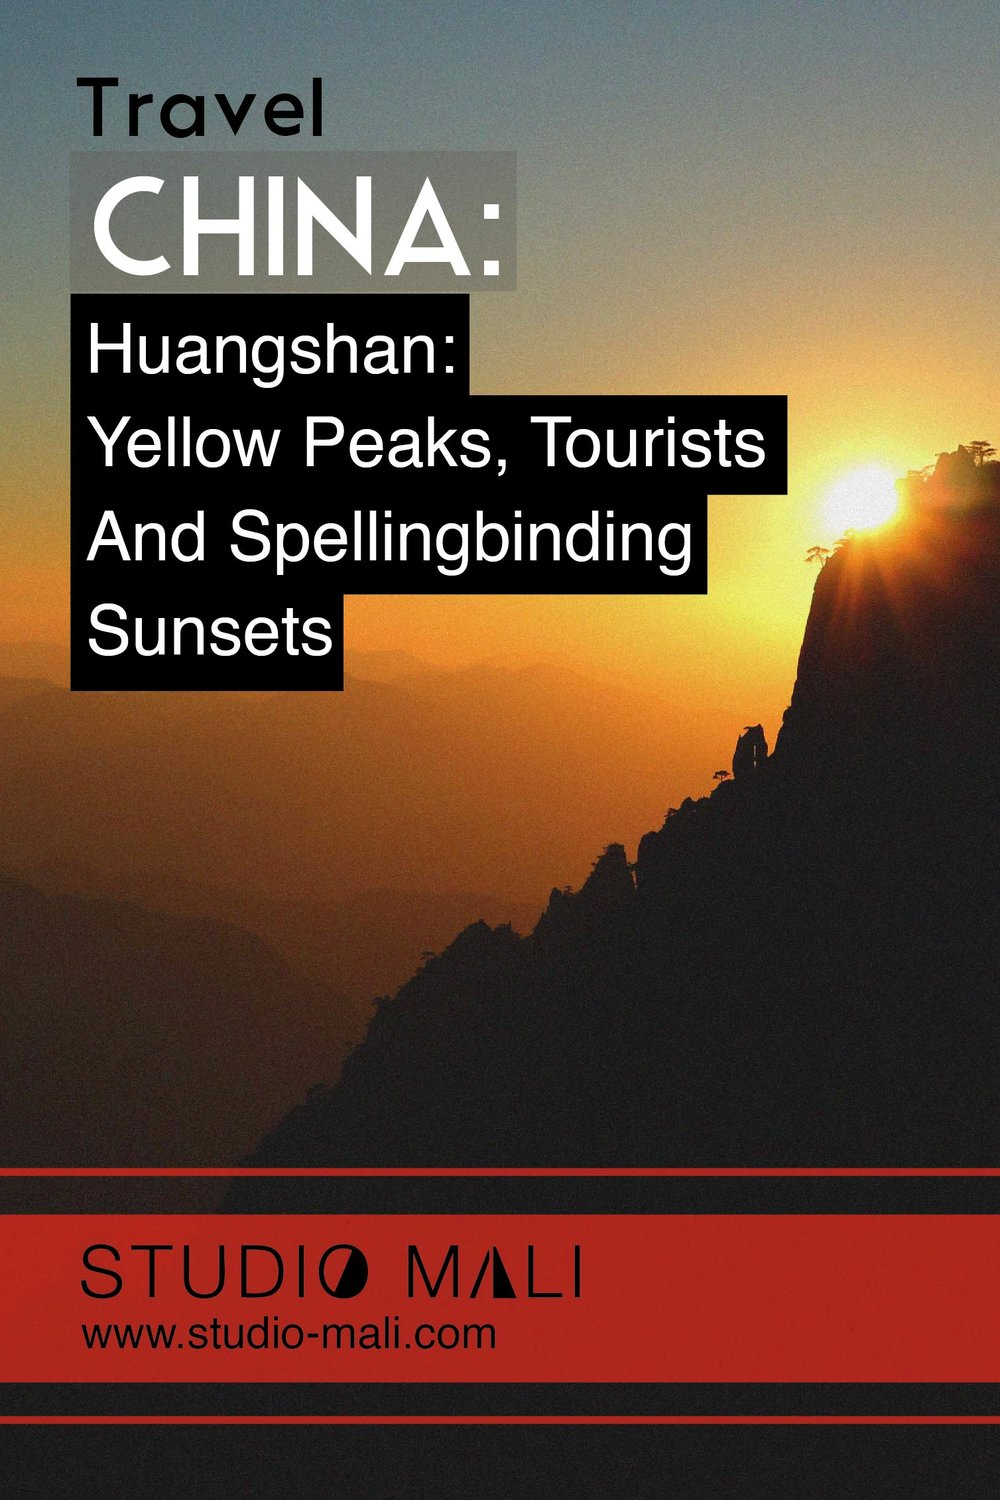 Huangshan: Yellow Peaks, Tourists And Spellbinding Sunsets